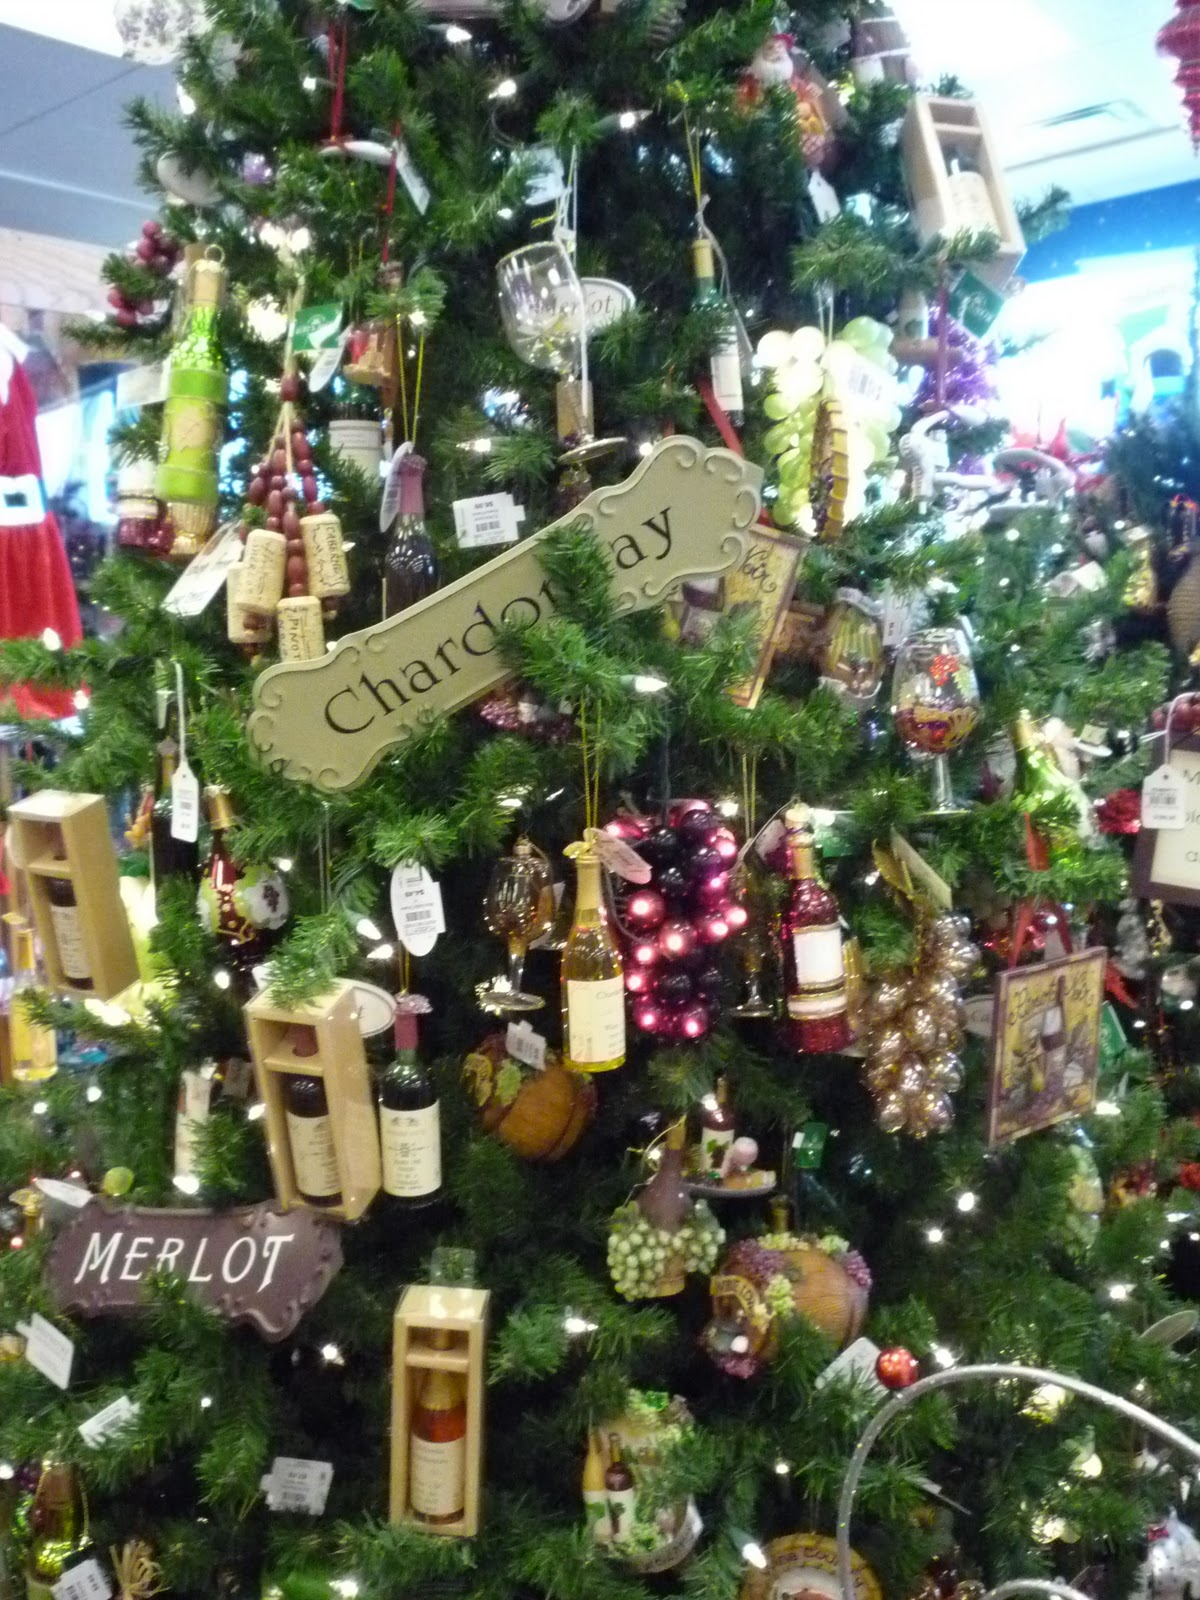 here are some of the styles of store bought decorations that are available in the stores